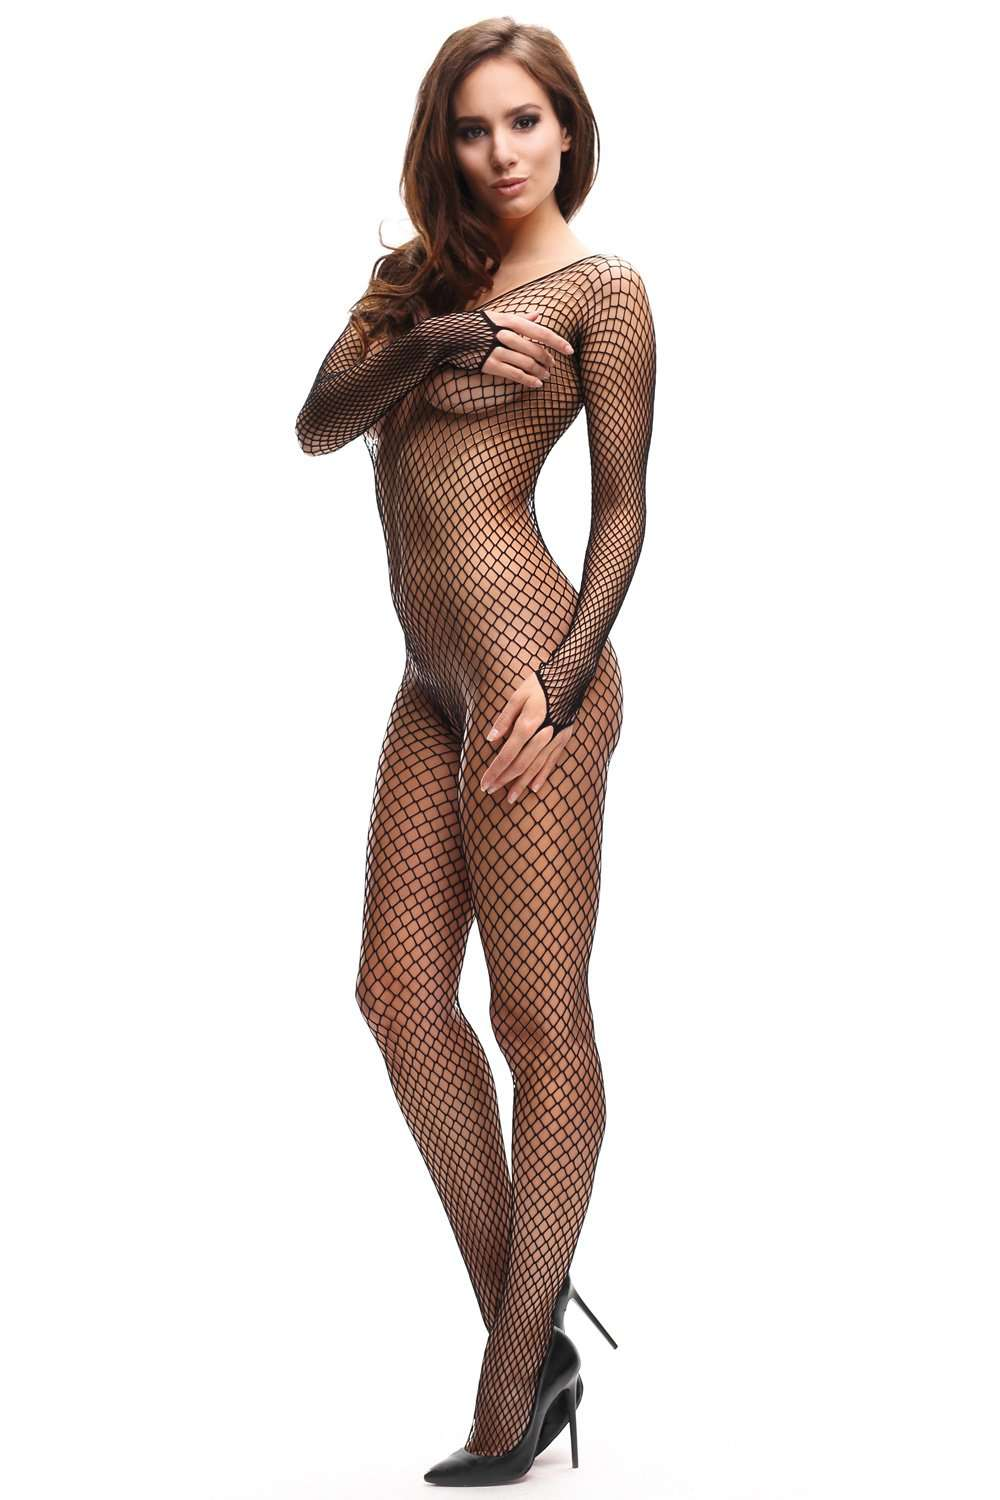 missO Fishnet Bodystocking - Crotchless Pantyhose - Naughty Knickers